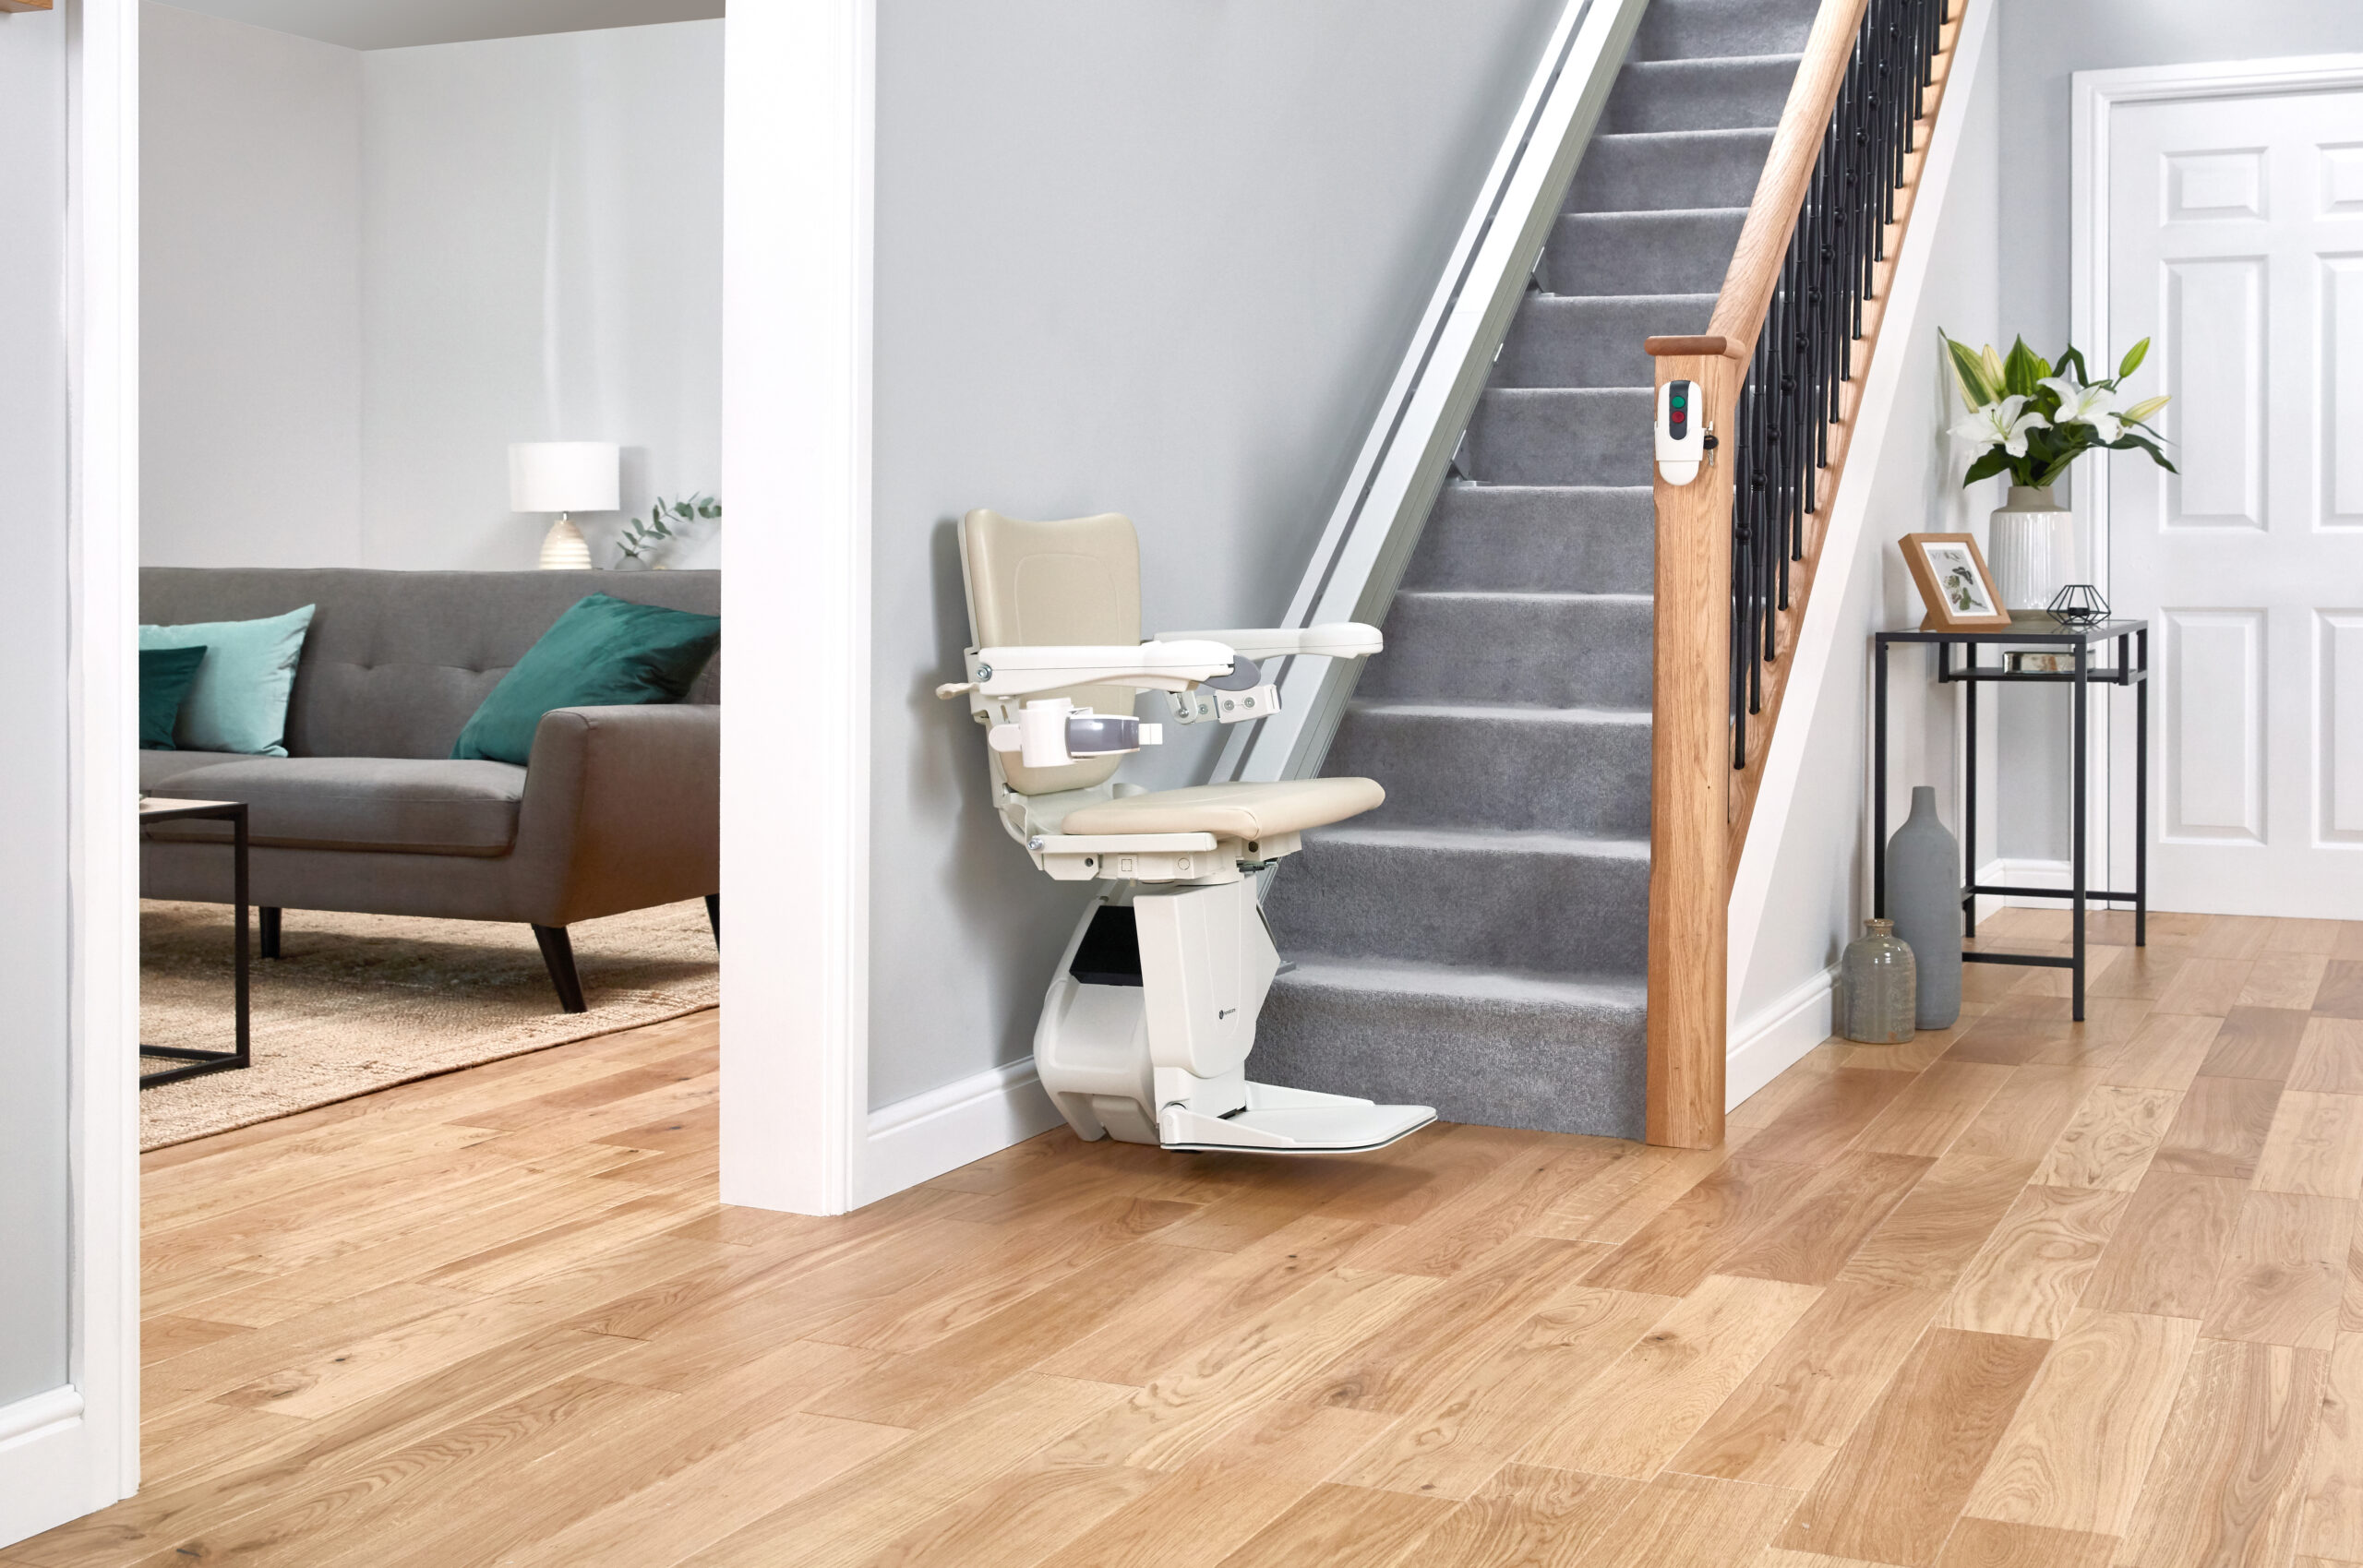 Stair Lifts Provide An Excellent Solution To Your Mobility Issues